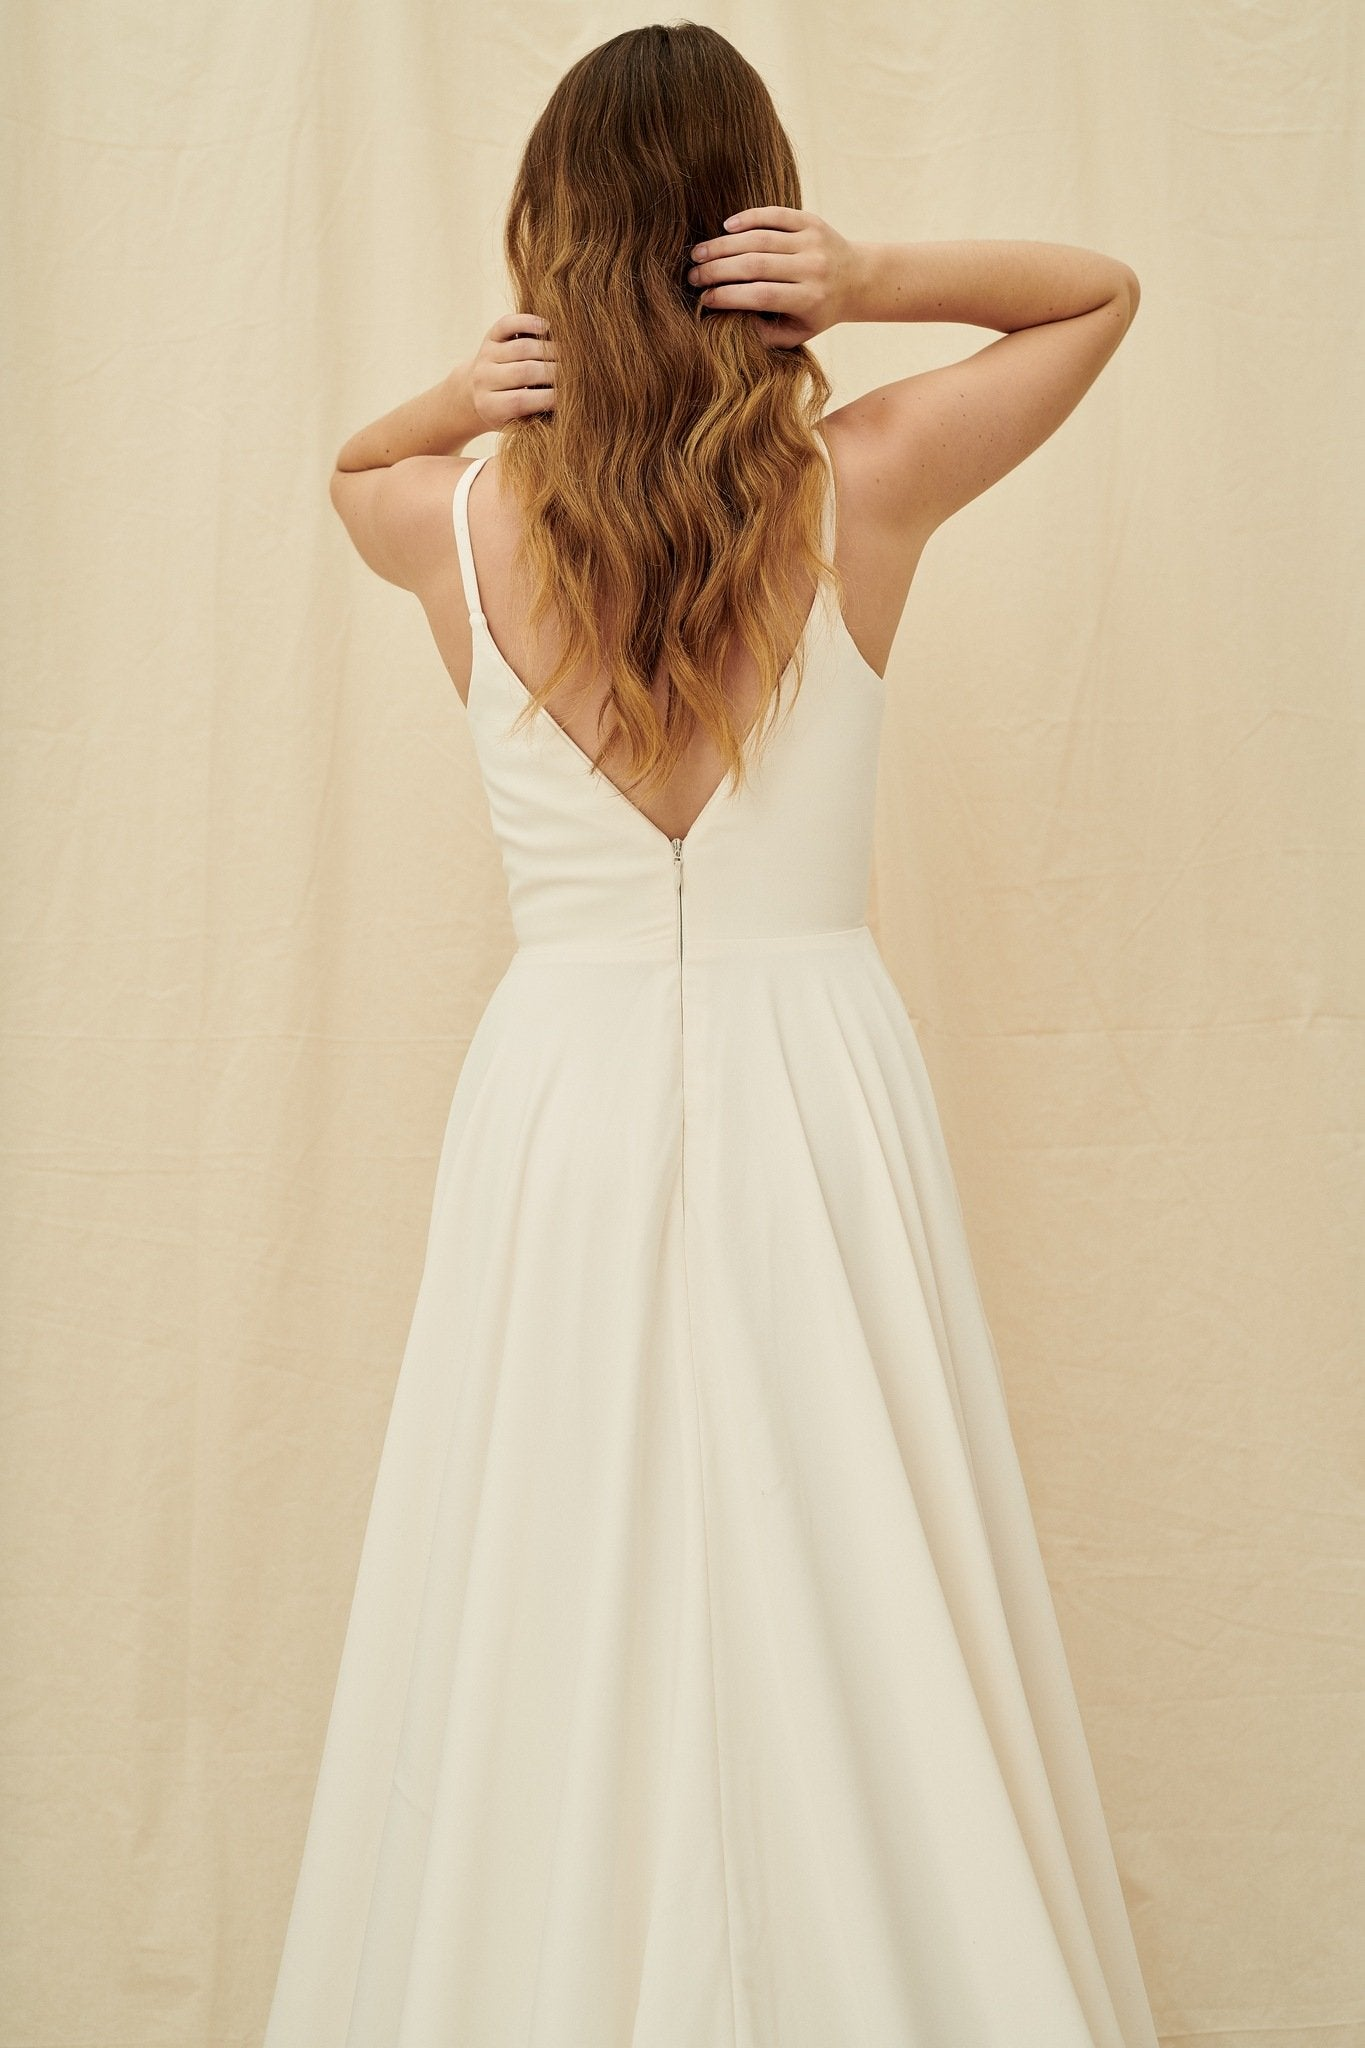 Simple crepe wedding dress with an extra long train and pockets